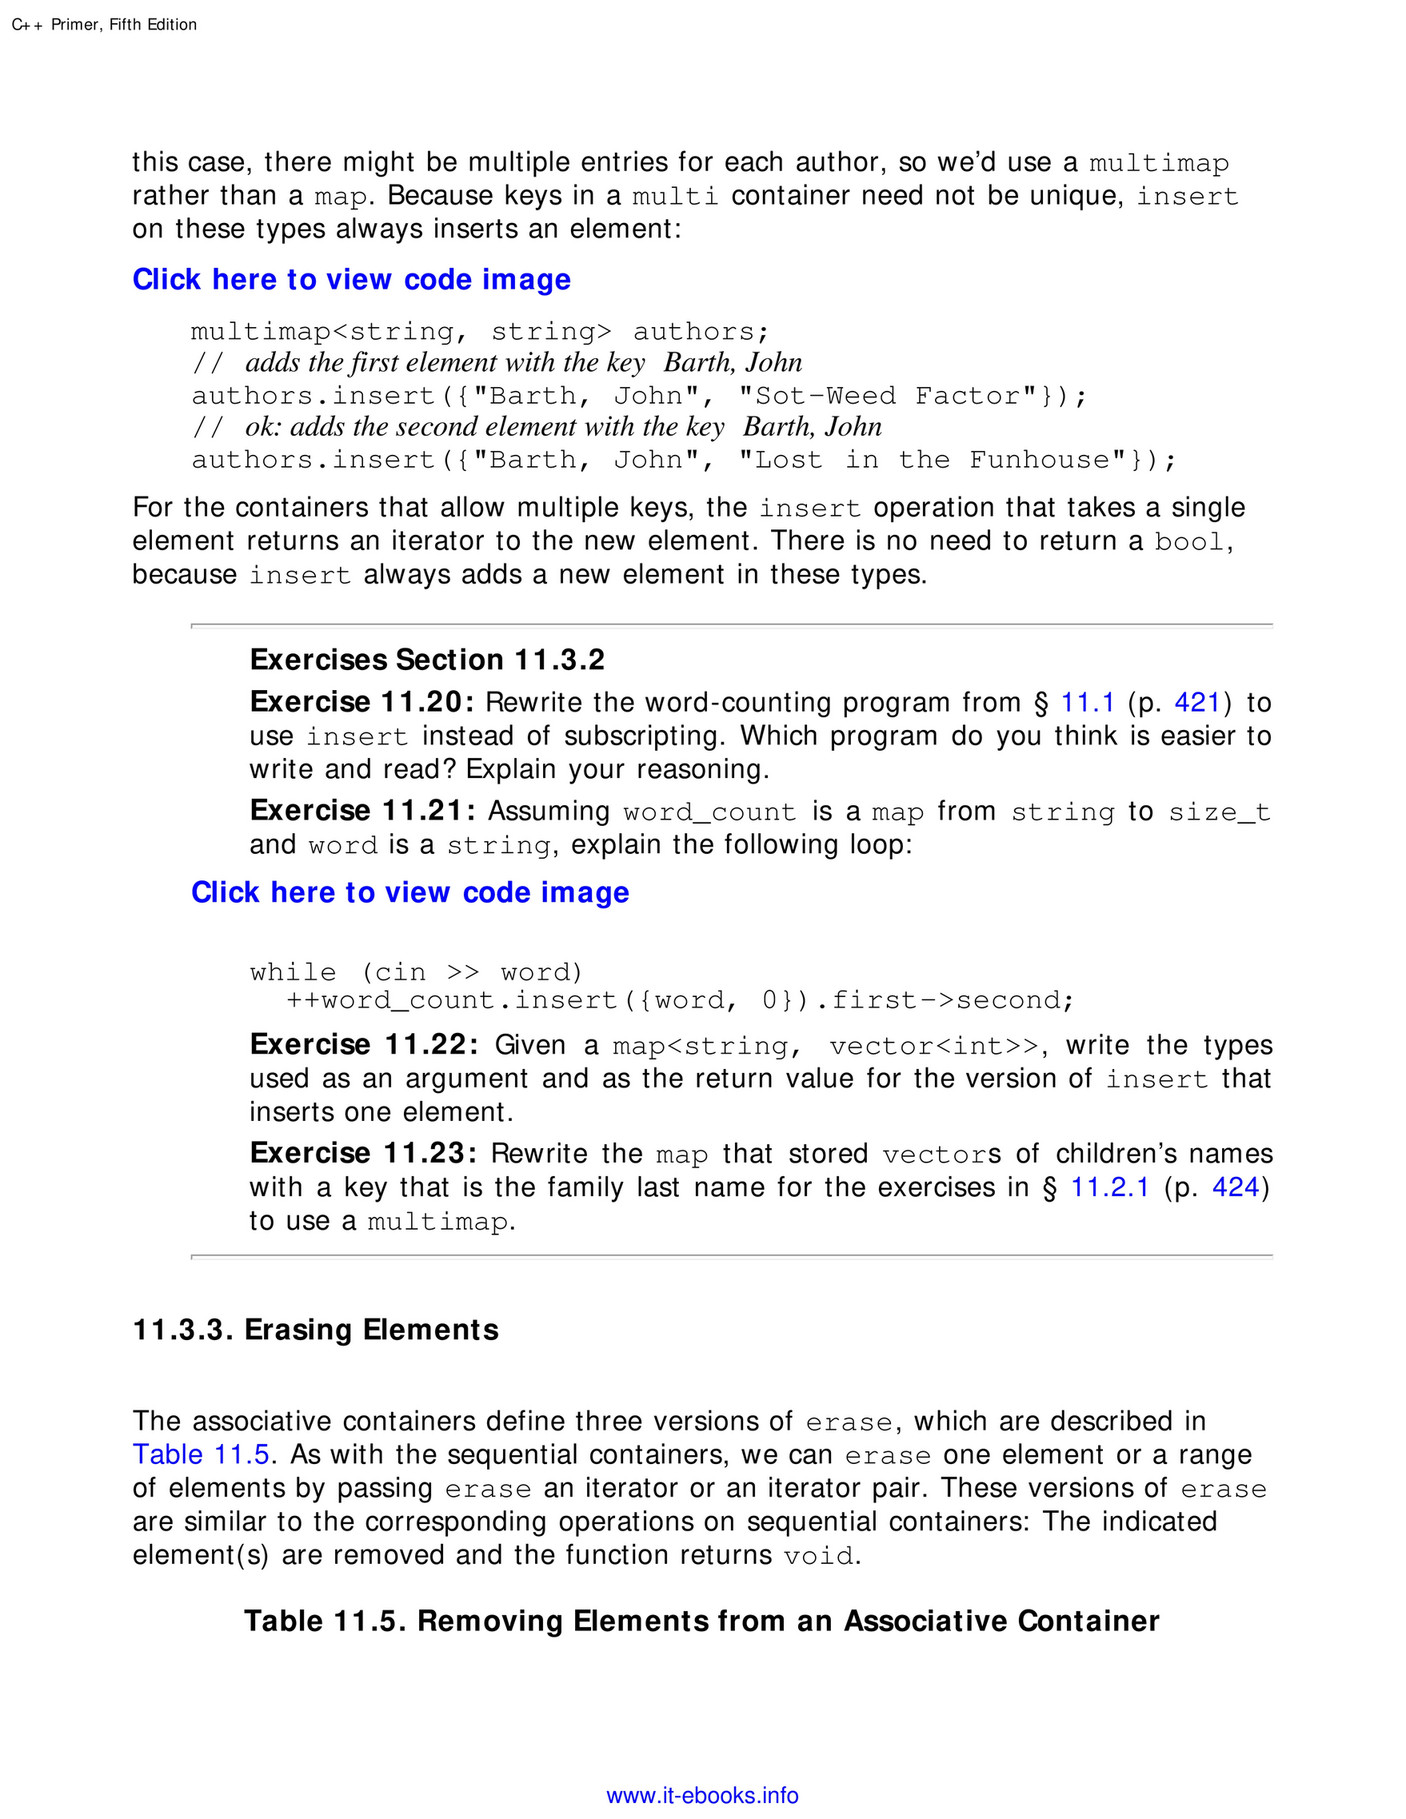 My publications - C++ Primer, 5th Edition - Page 544-545